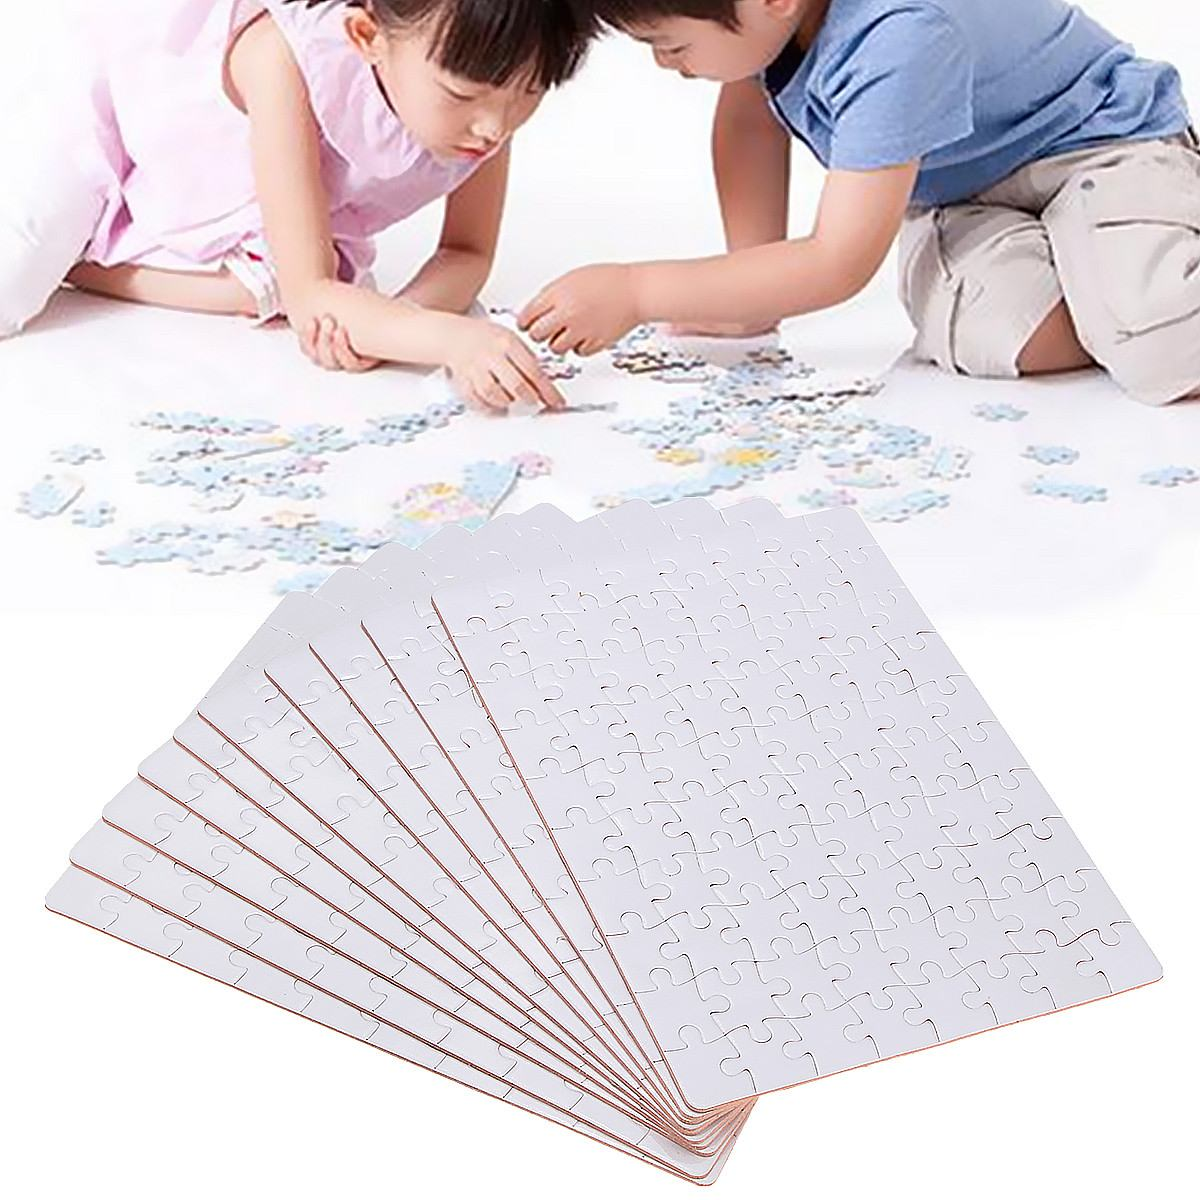 10x A5 For Heat Press Machine DIY Blank Dye Sublimation Printable Jigsaw Puzzle Unique Gift for Heat Press Transfer Paper